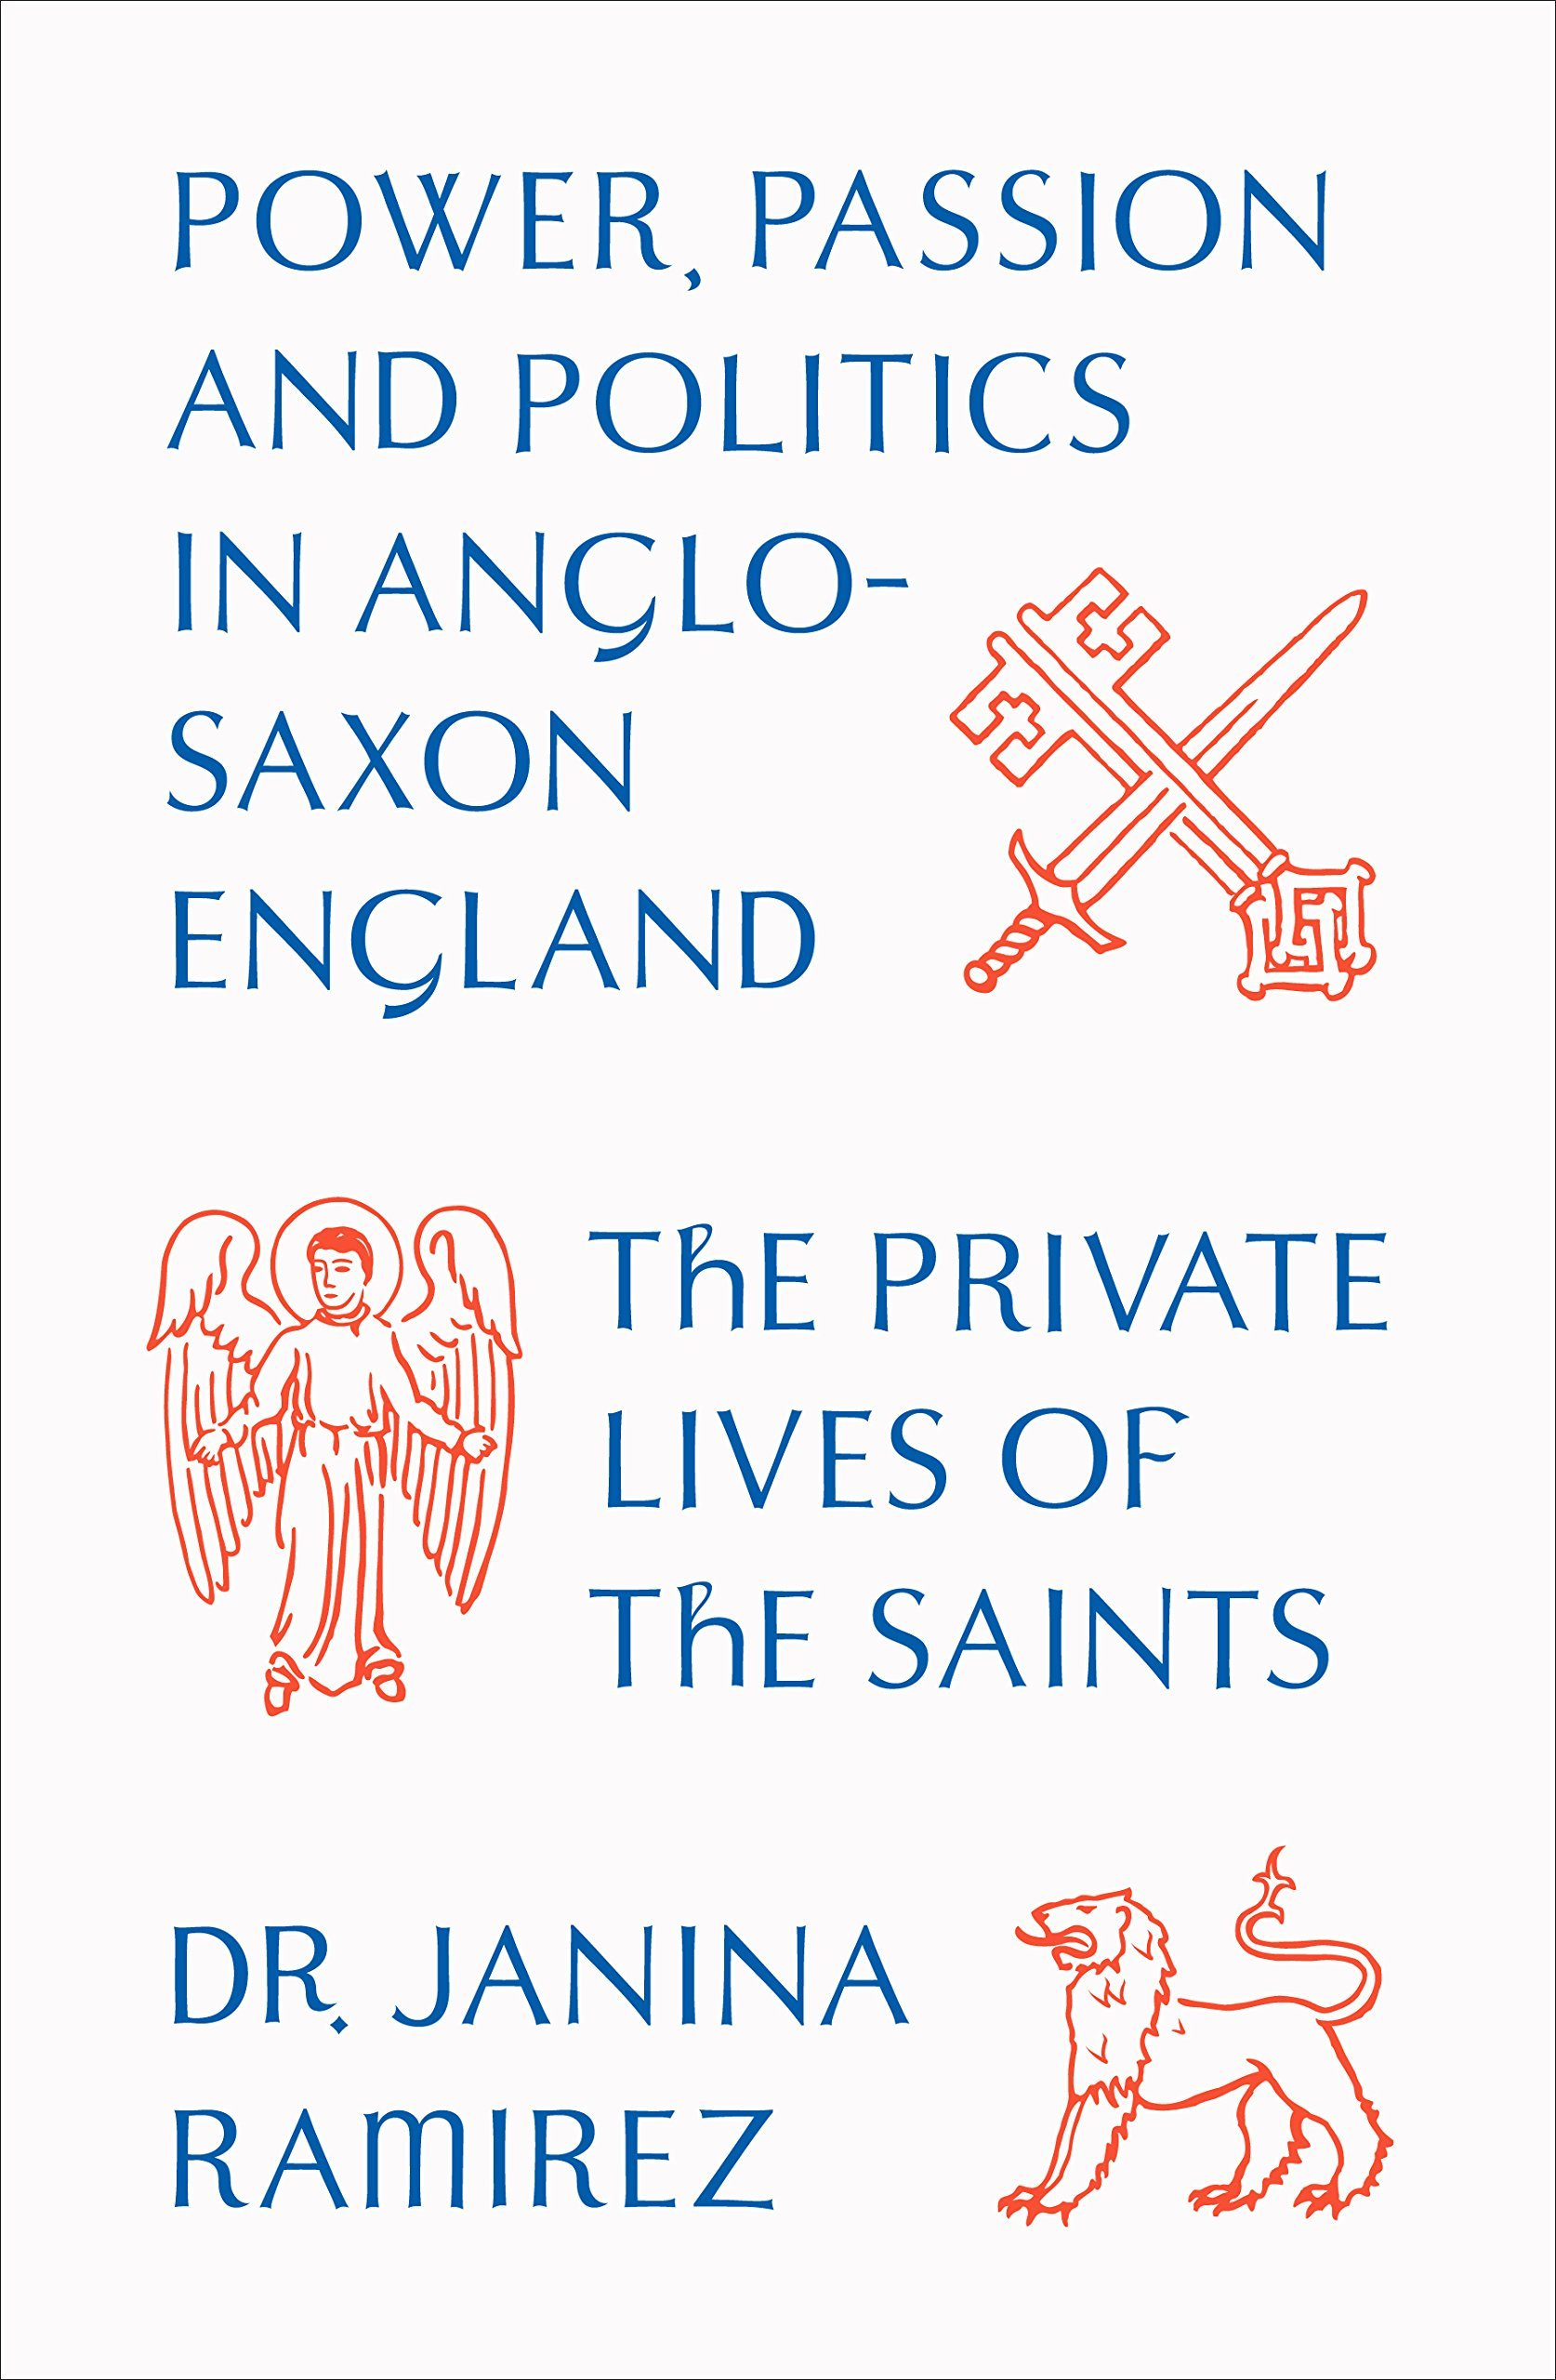 The Private Lives of the Saints Power, Passion and Politics in Anglo-Saxon England